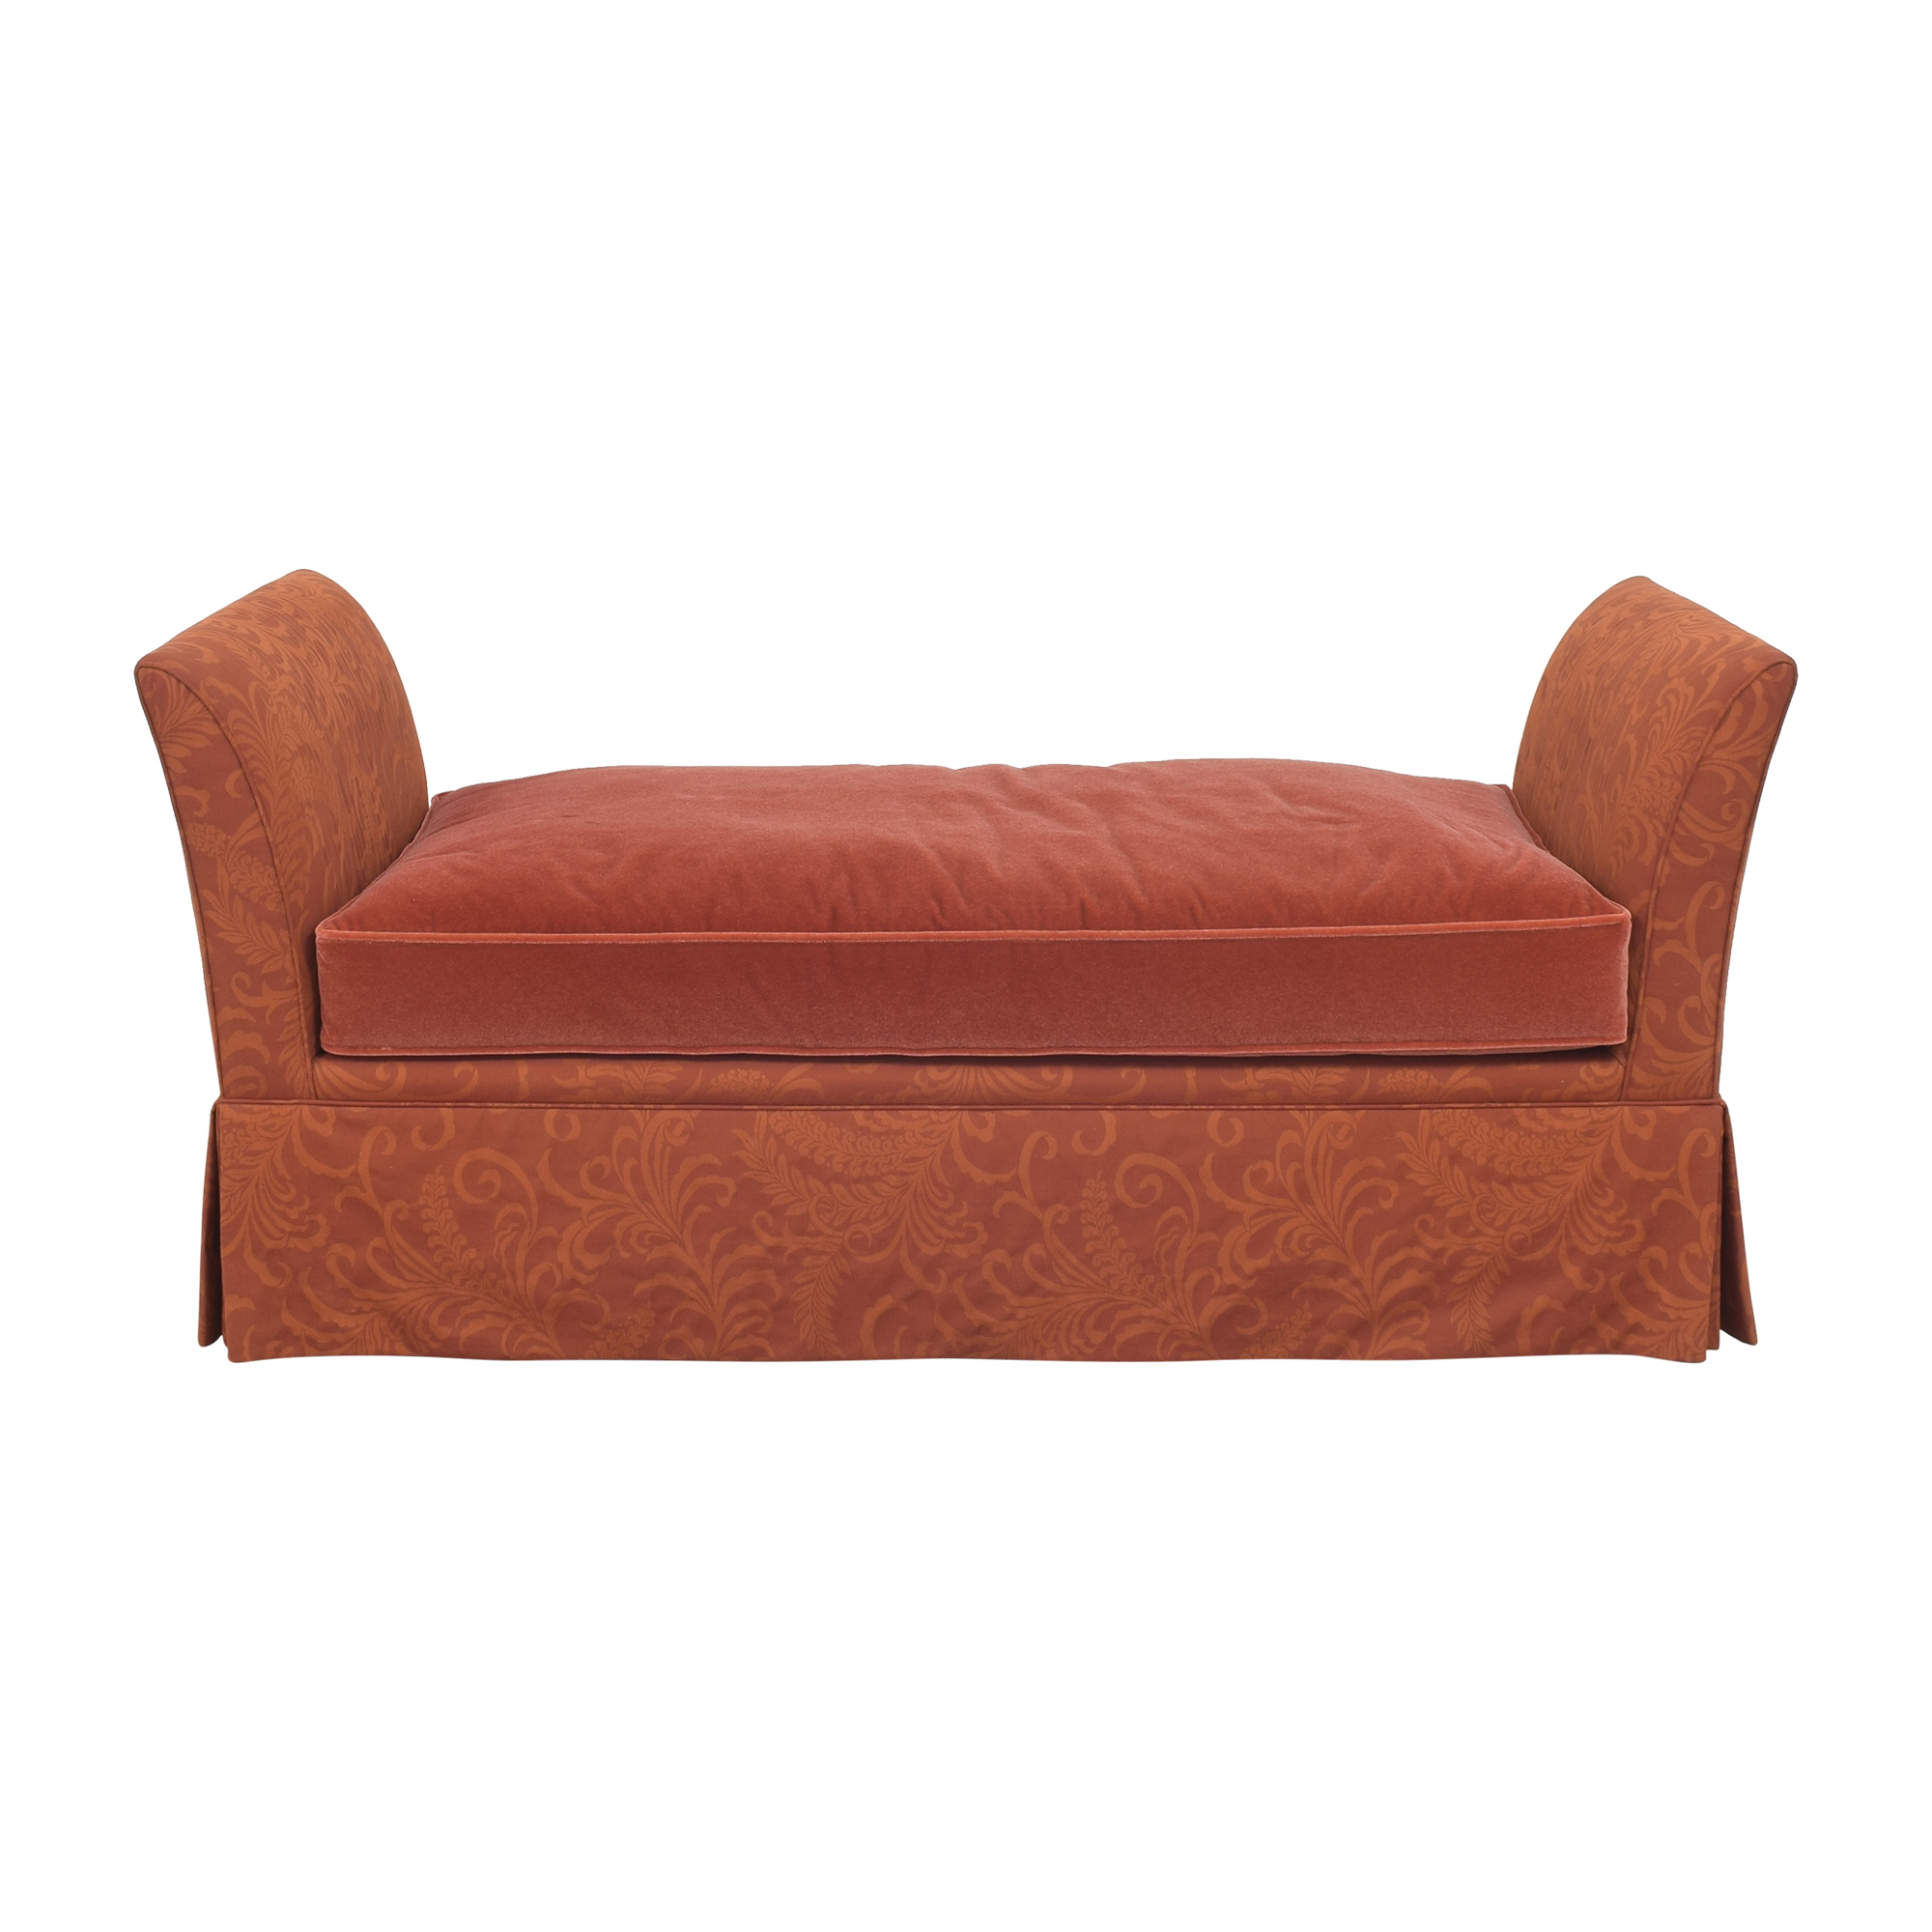 Lee Industries Lee Industries Skirted Daybed with Pillows coupon